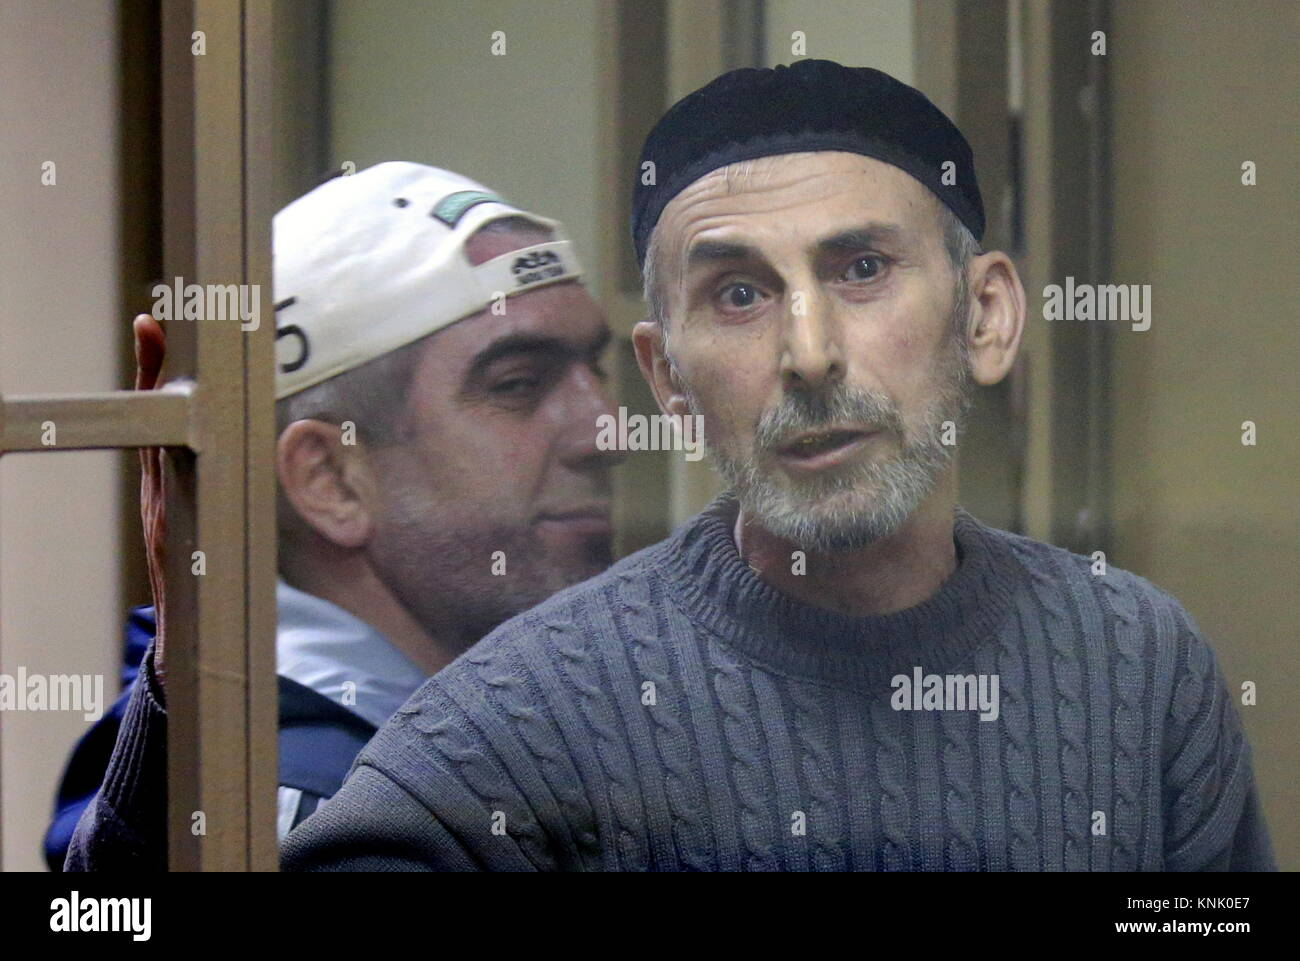 Rostov On Don, Russia. 13th Dec, 2017. Ramzan Belyalov (front) and Magomed Mazdayev, charged with taking part in - Stock Image